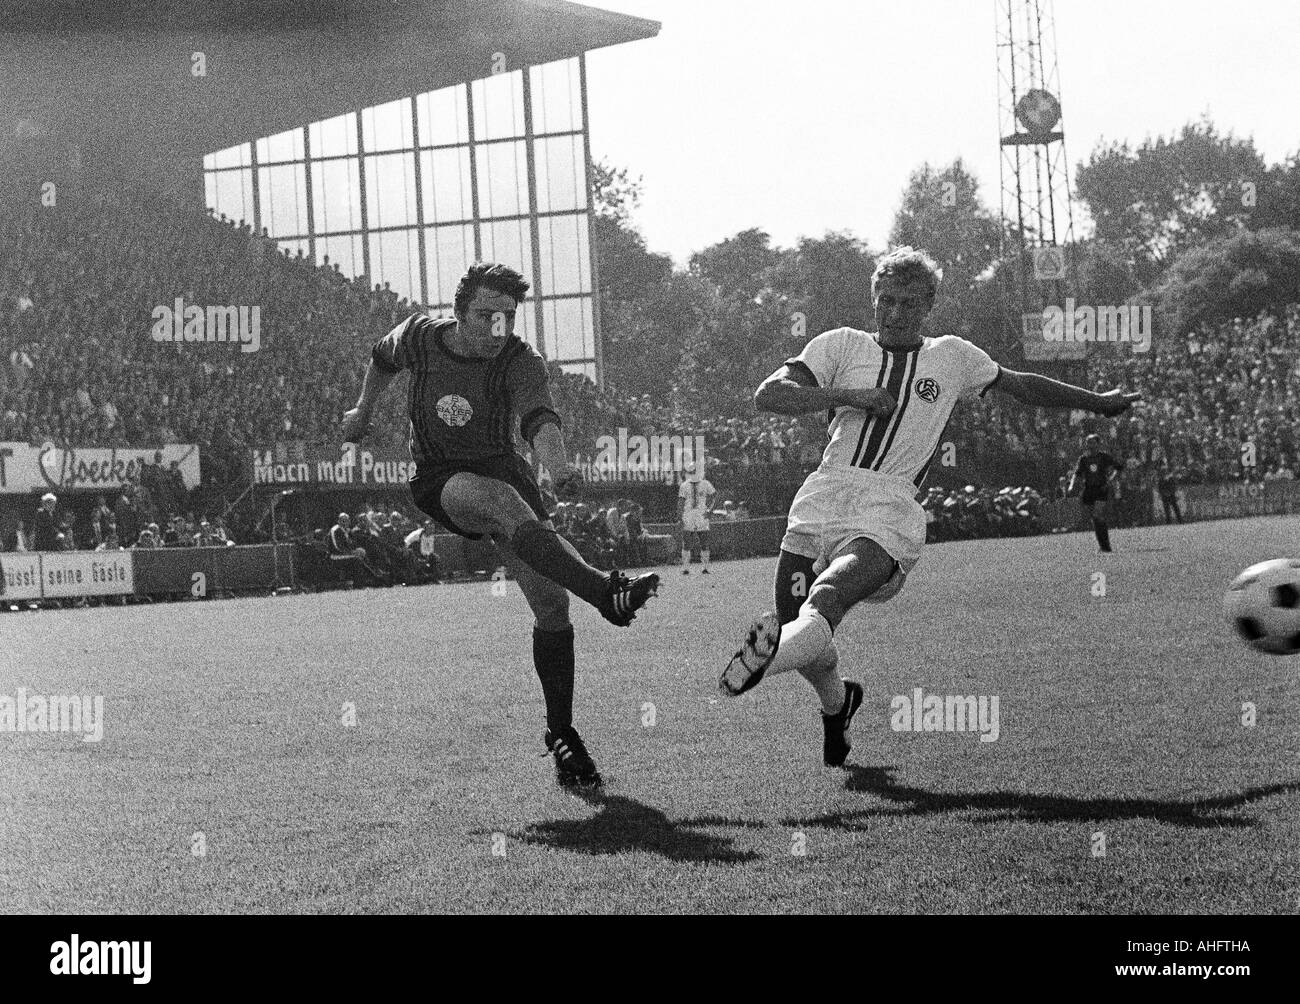 football, Regionalliga West, 1968/1969, Stadium an der Hafenstrasse in Essen, Rot-Weiss Essen versus Bayer Leverkusen 2:2, scene of the match, shot on goal by Friedhelm Strelczyk (Bayer) left, right Heinz Stauvermann (RWE) - Stock Image